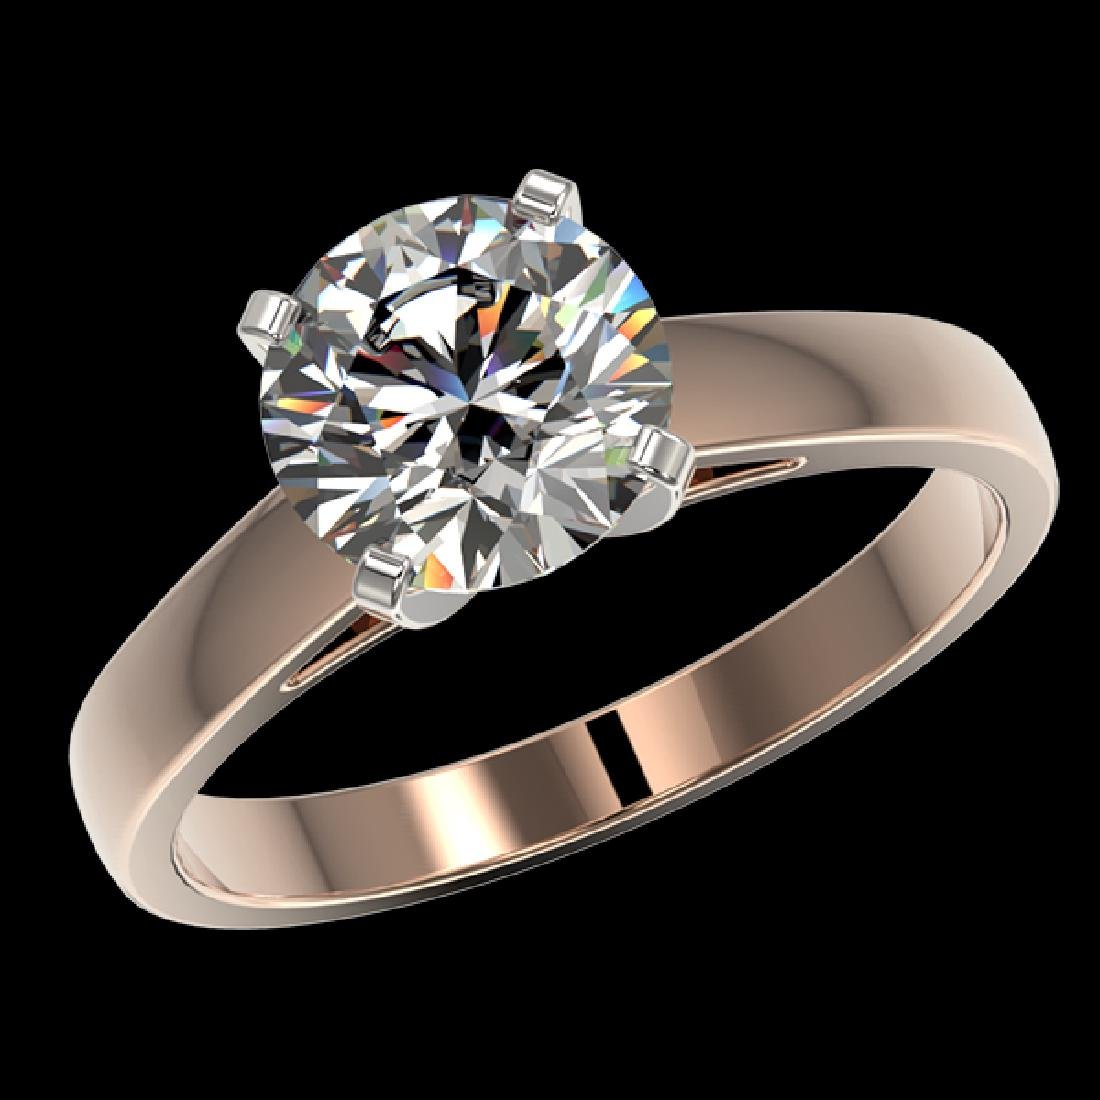 2.05 CTW Certified G-Si Quality Diamond Solitaire - 2